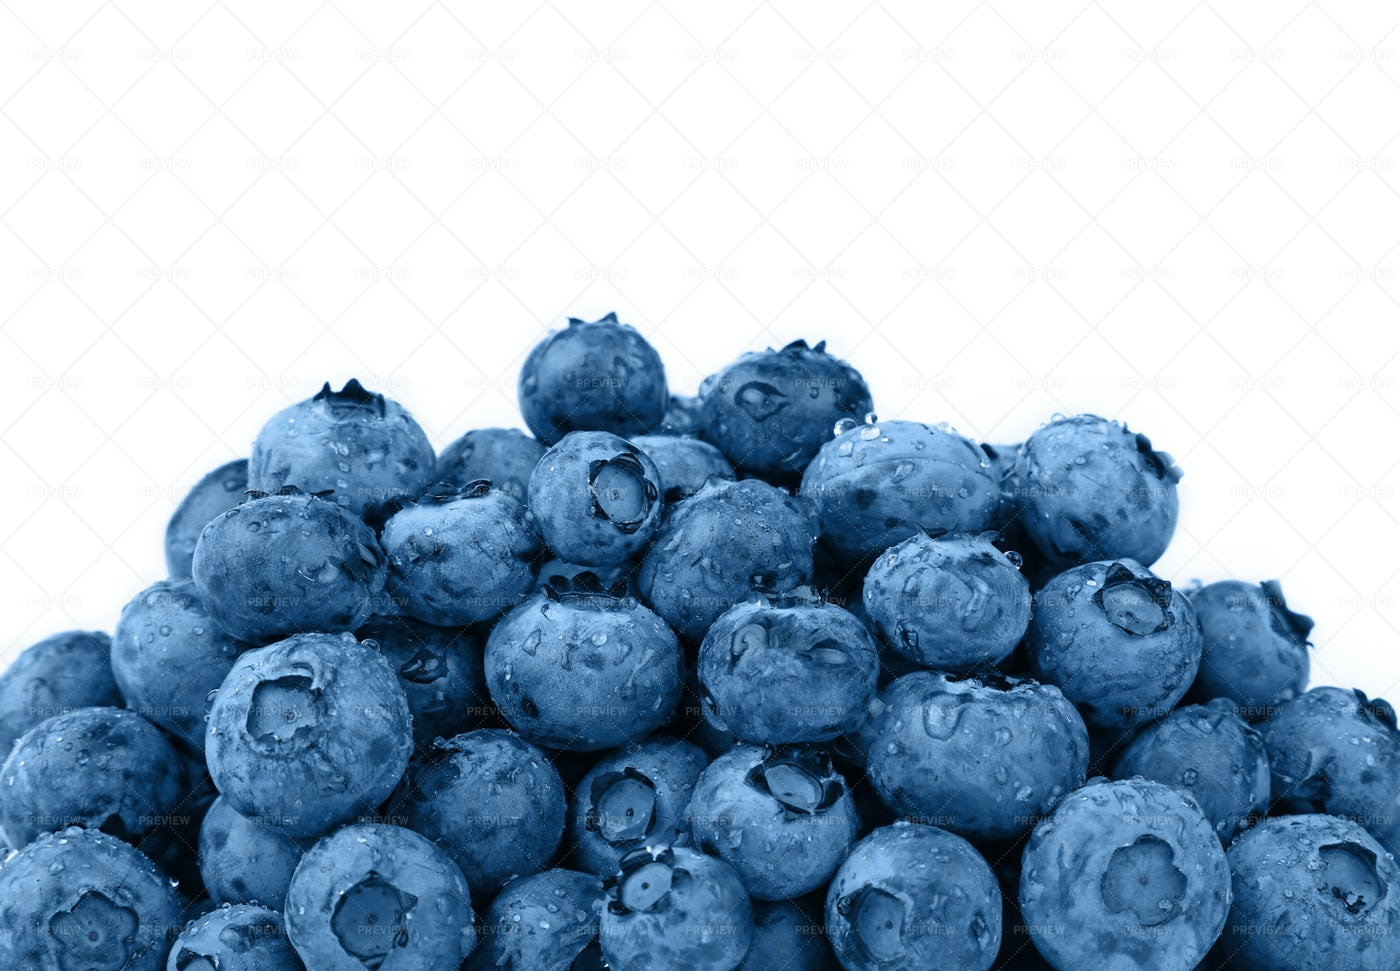 Washed Blueberries: Stock Photos